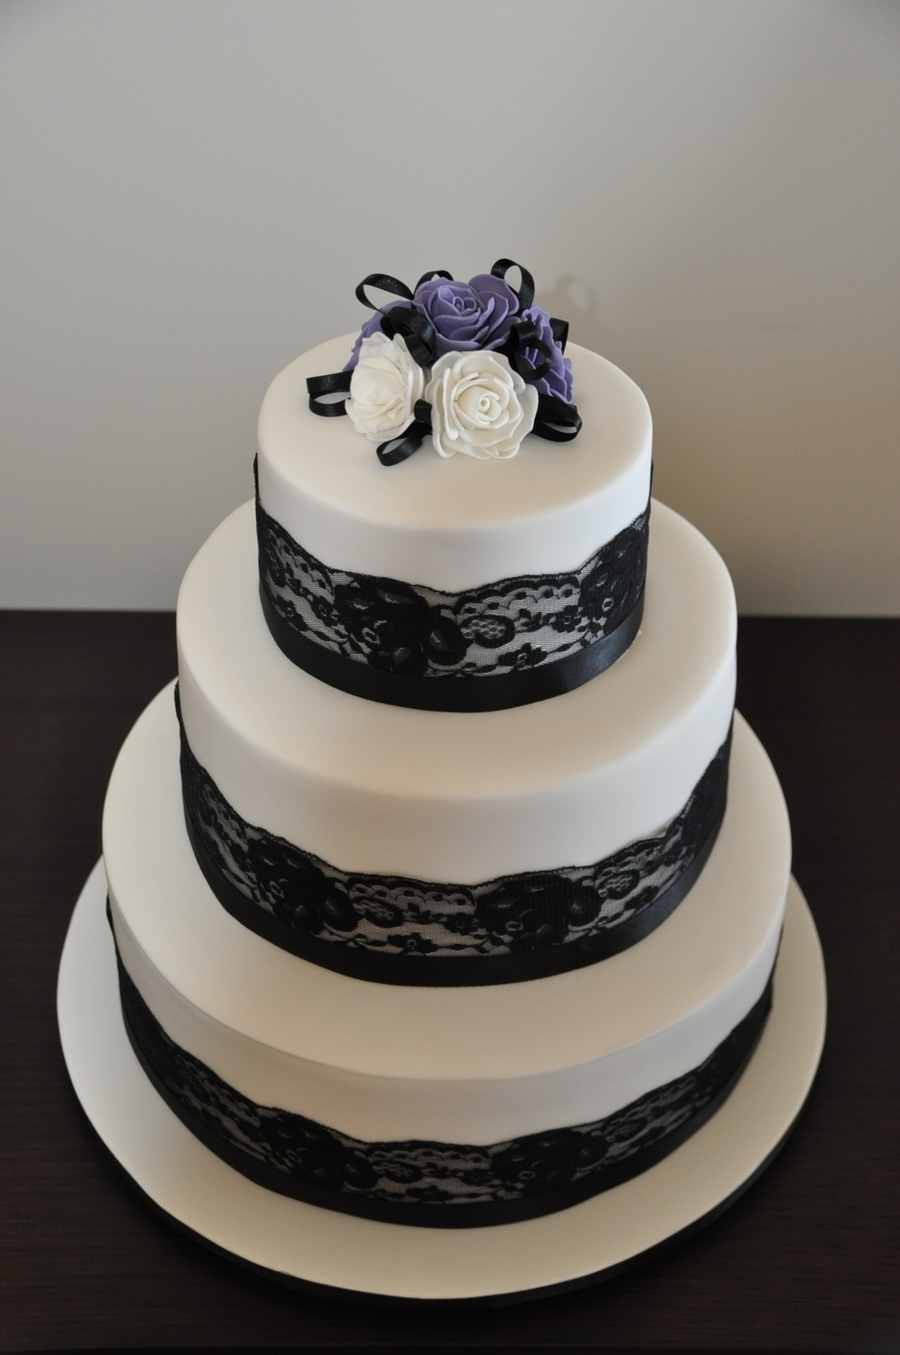 Wedding Cake With Black Lace And Roses on Cake Central